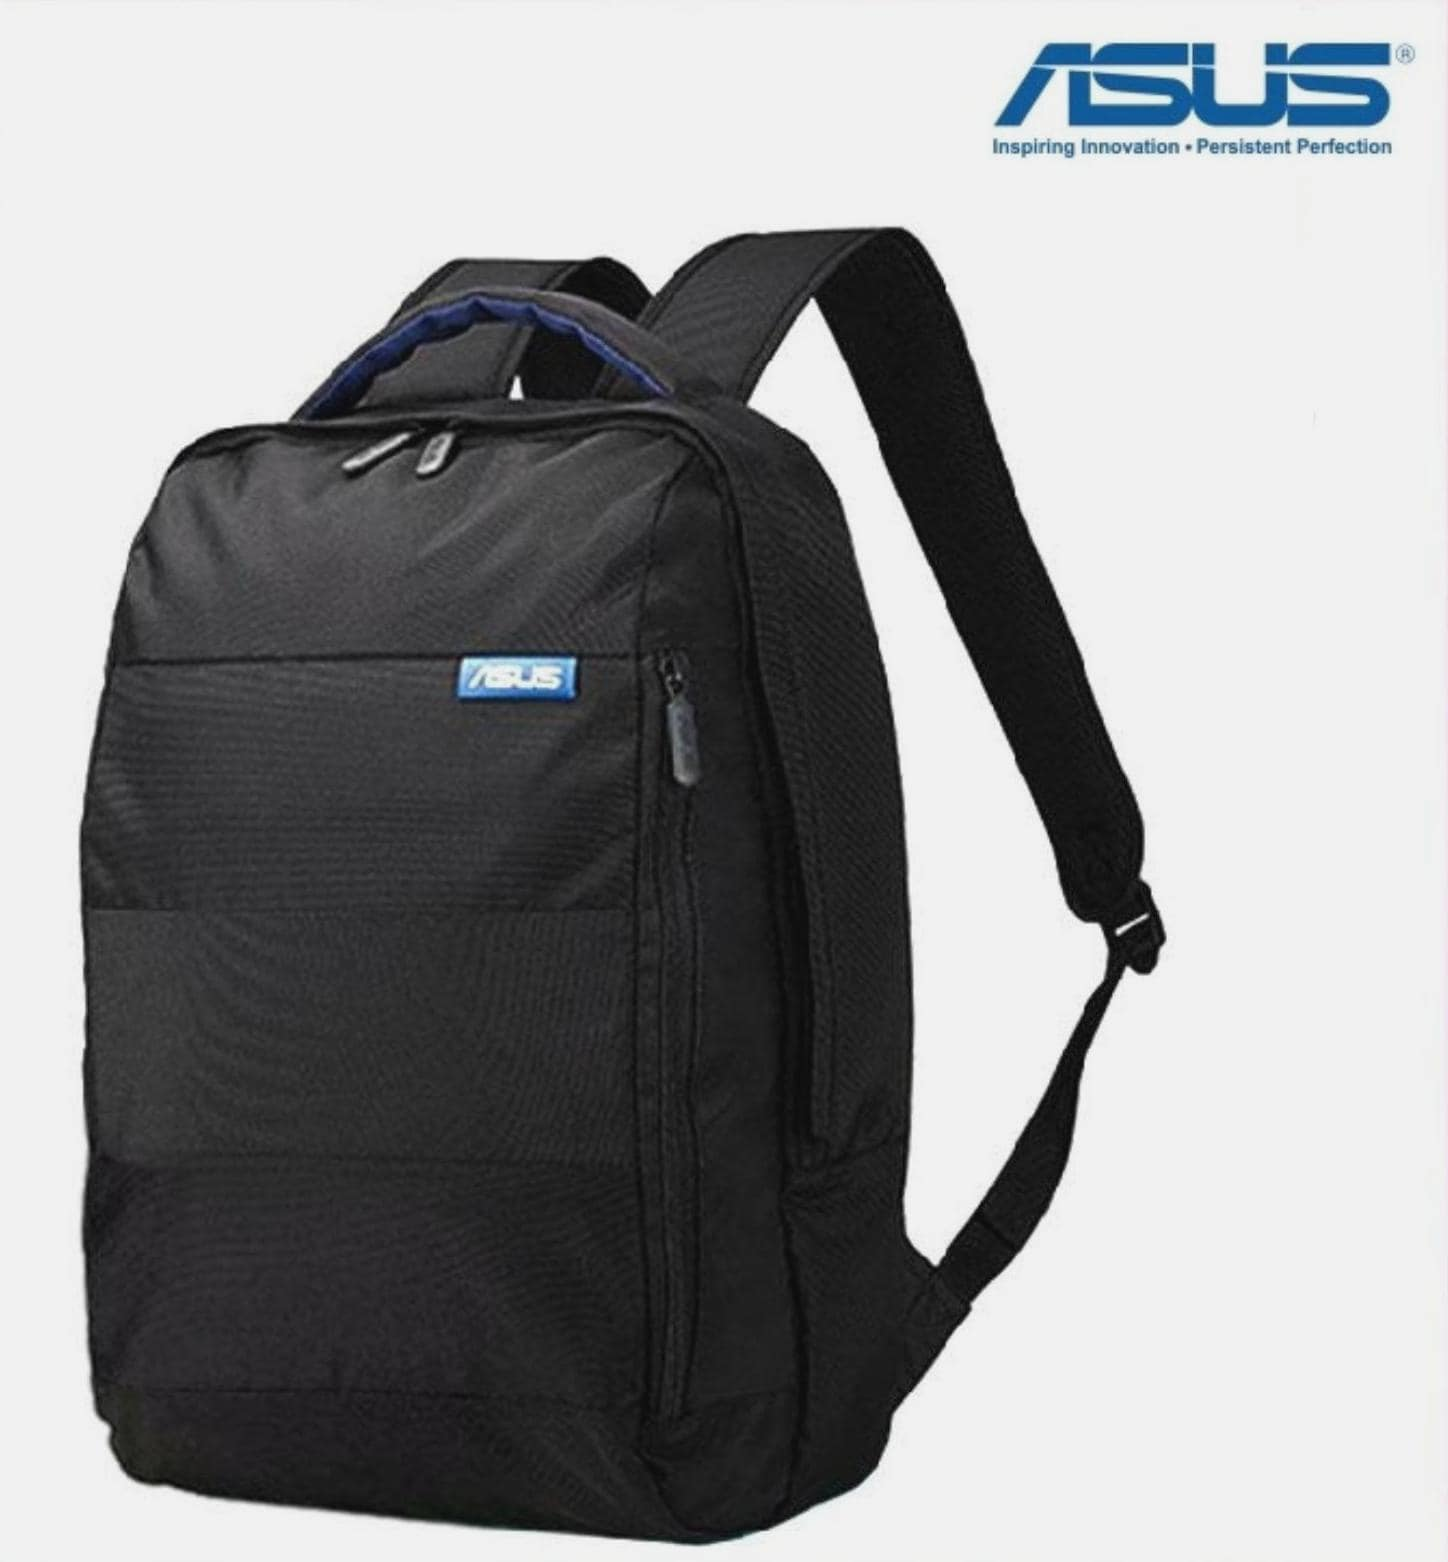 """Asus Backpack for laptop 15.6 """" - 1"""